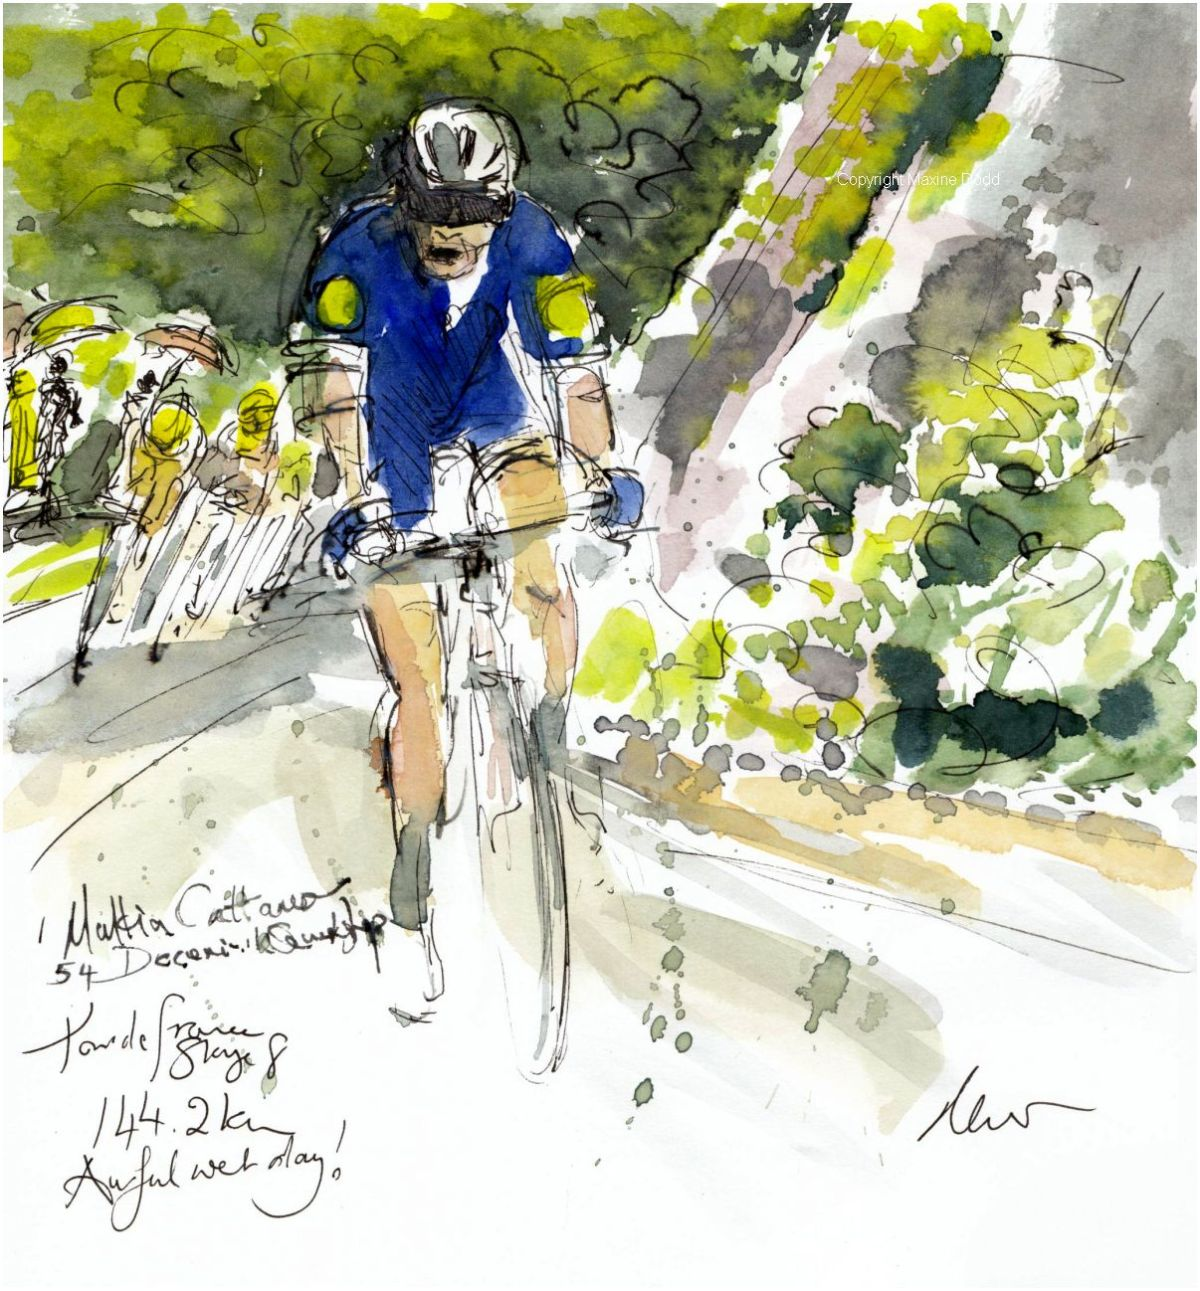 Tour de France 2021 - Stage 8, Awful, wet day! Original watercolour painting Maxine Dodd